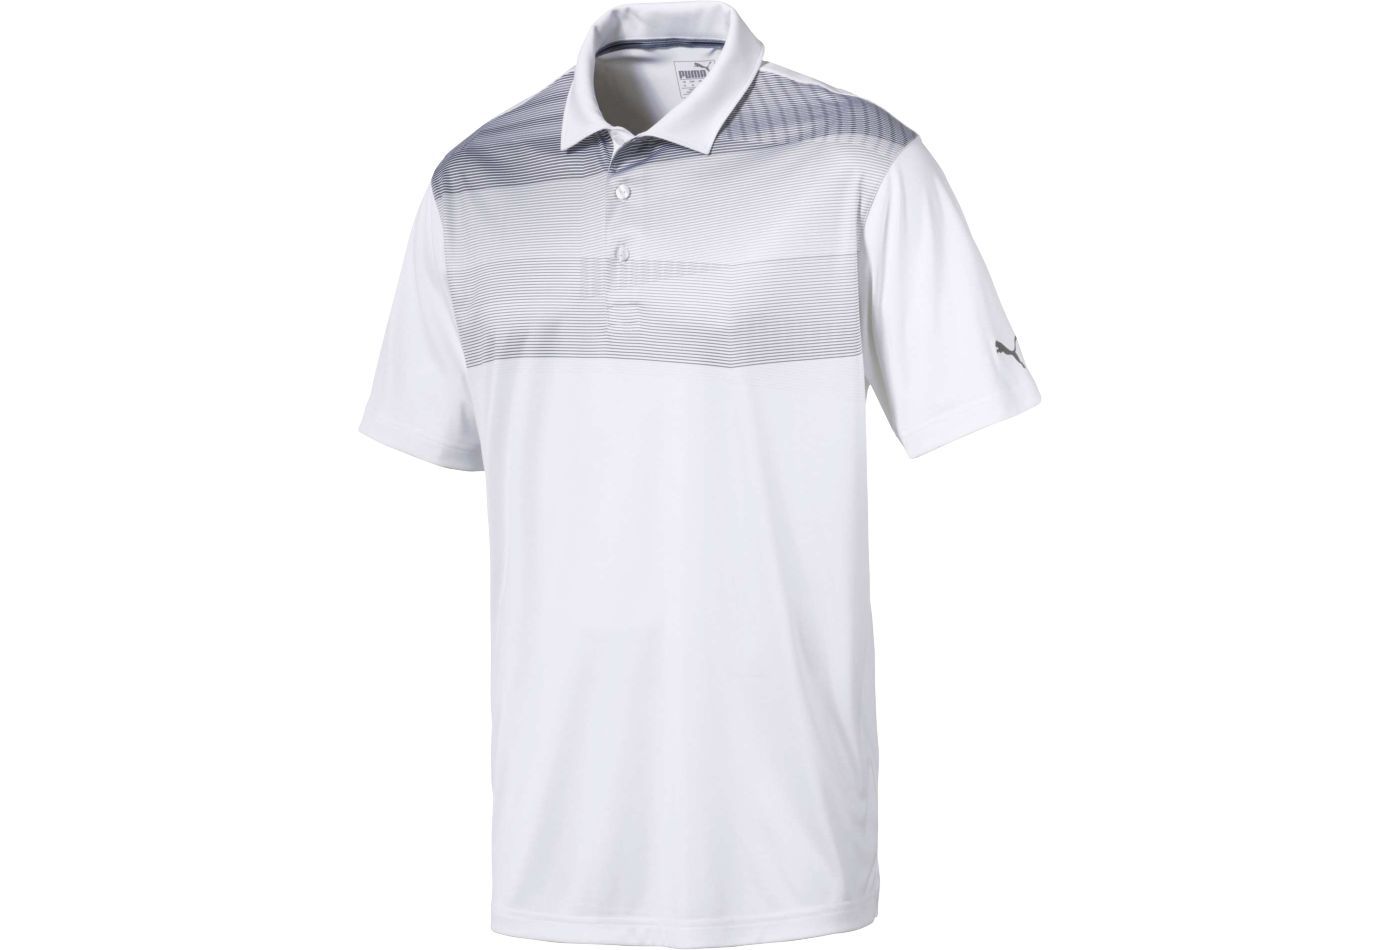 PUMA Men's PWRCOOL Refract Golf Polo